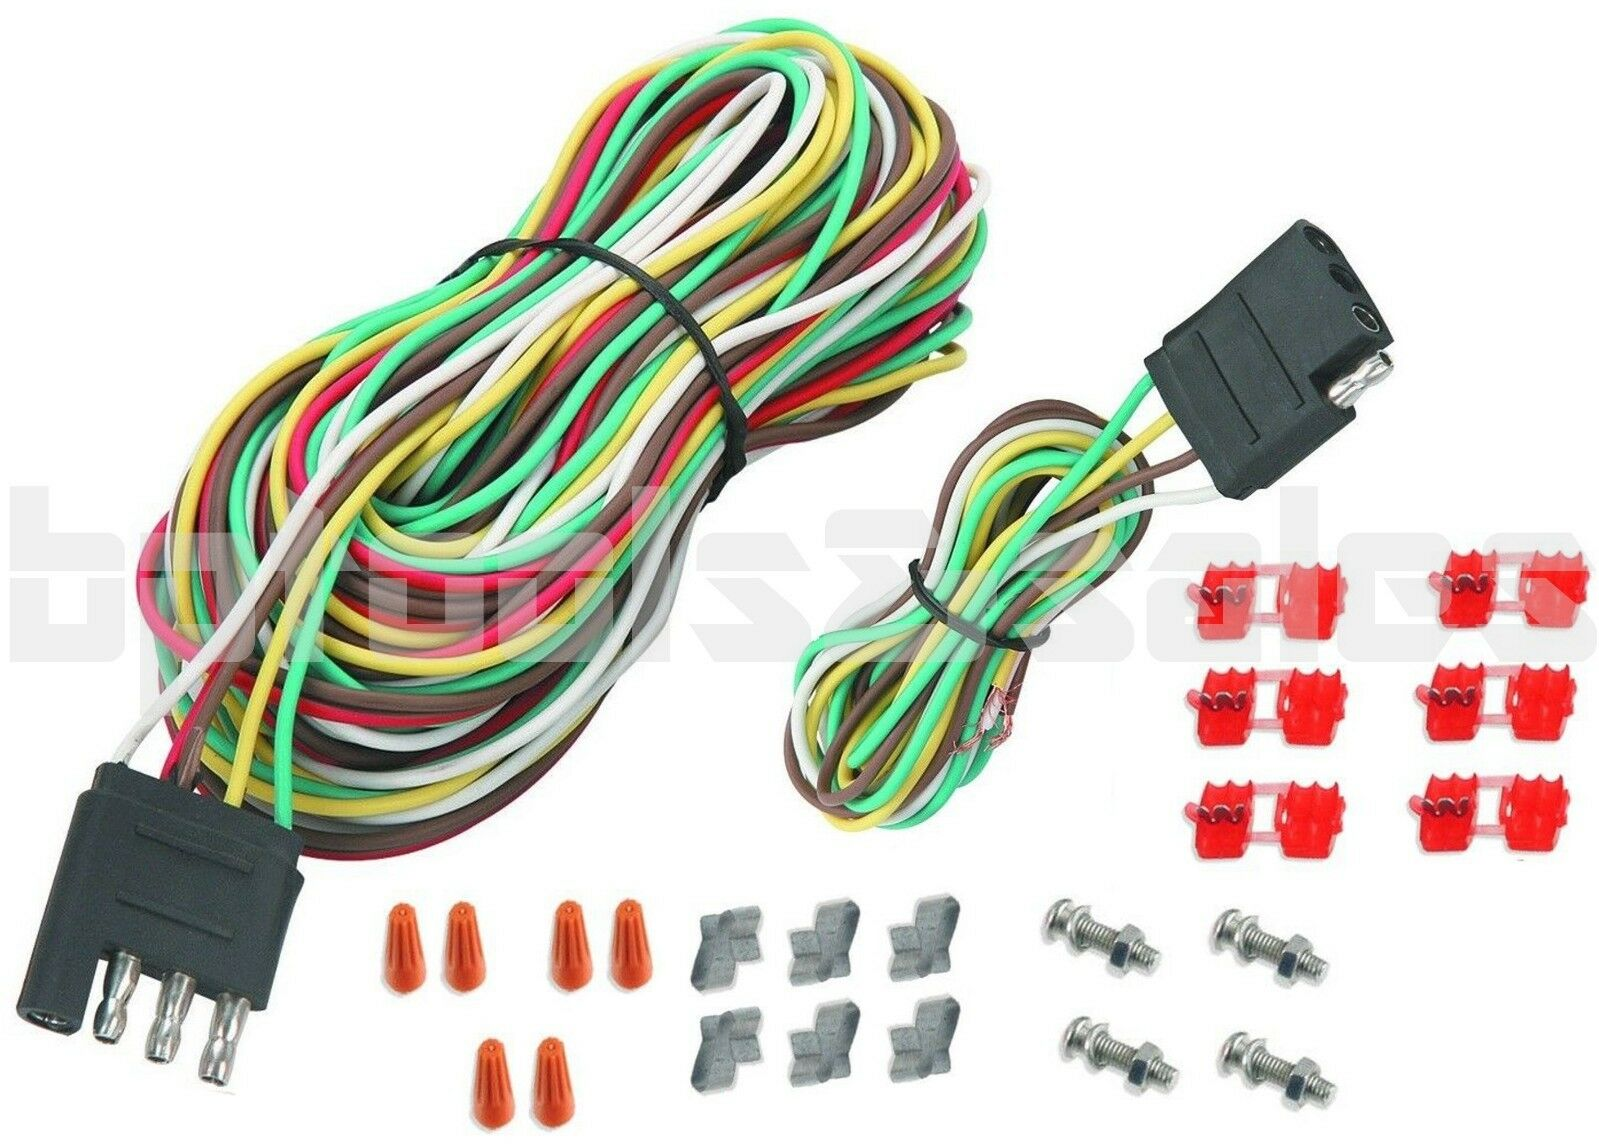 25ft 4 Way Trailer Wiring Connection Kit Flat Wire Extension Harness Boat Car Rv 1 Of 1free Shipping